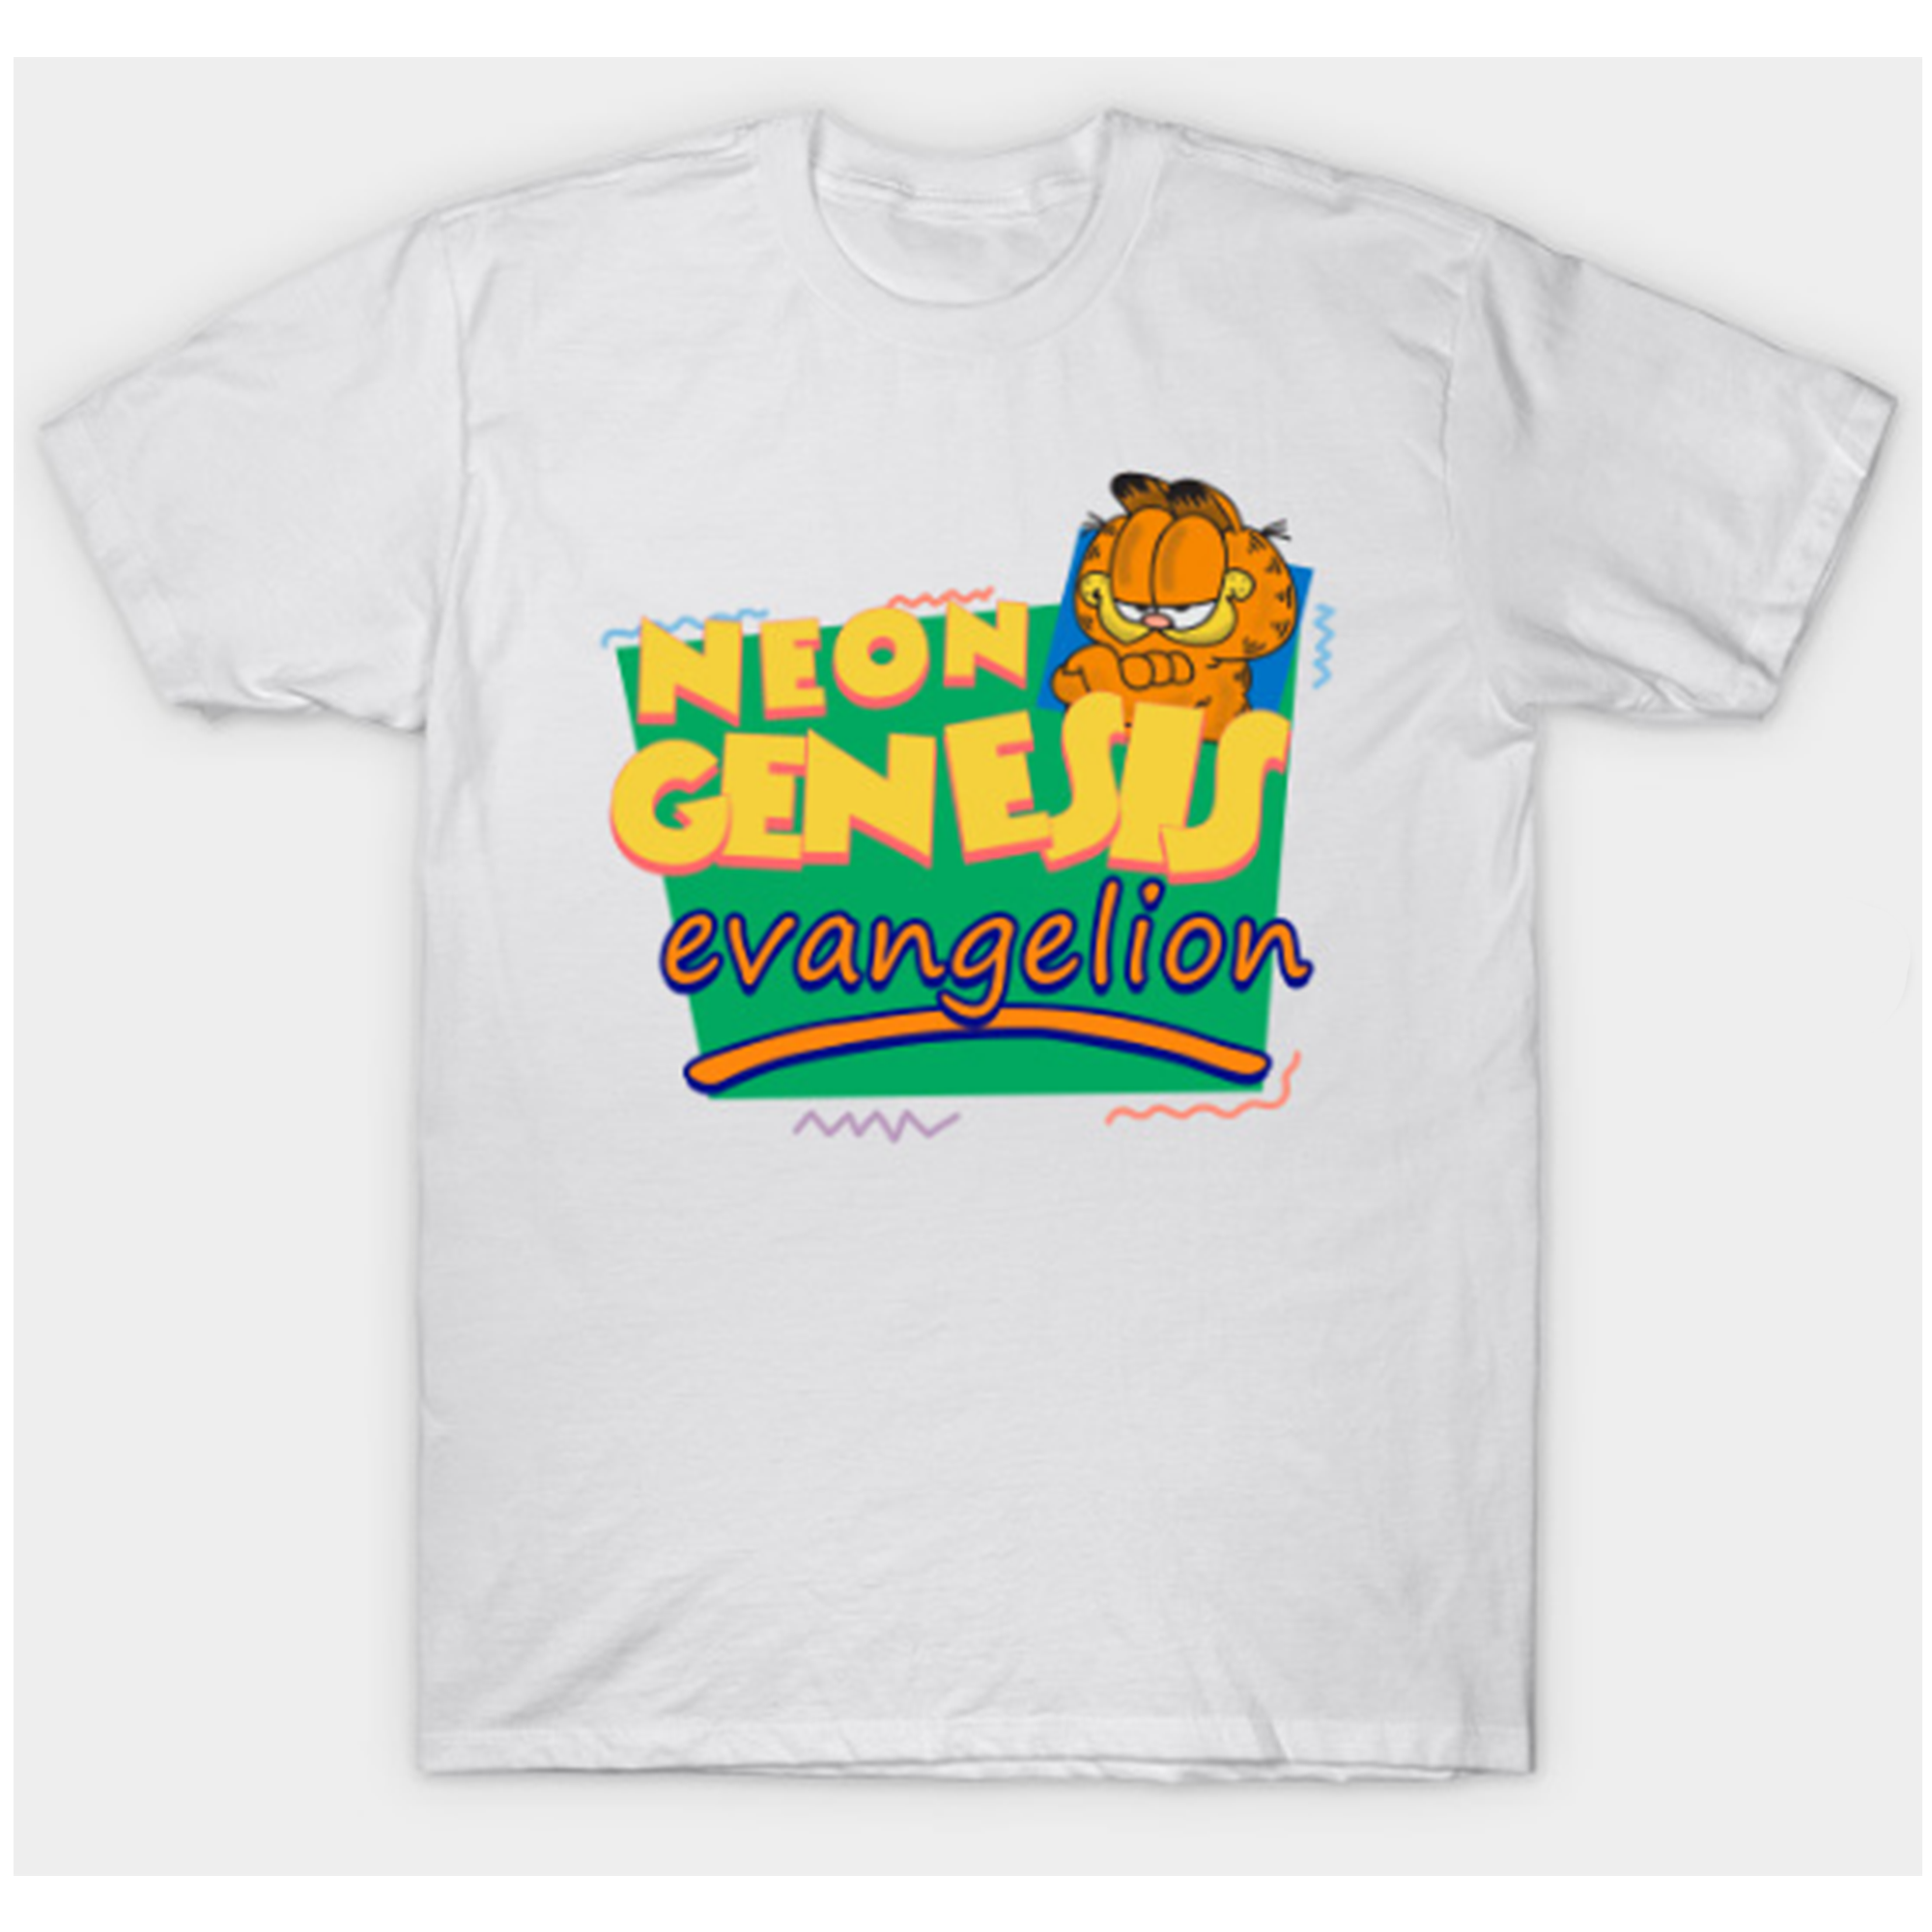 Neon Genesis Evangelion Meets Garfield T Shirt By Clothenvy